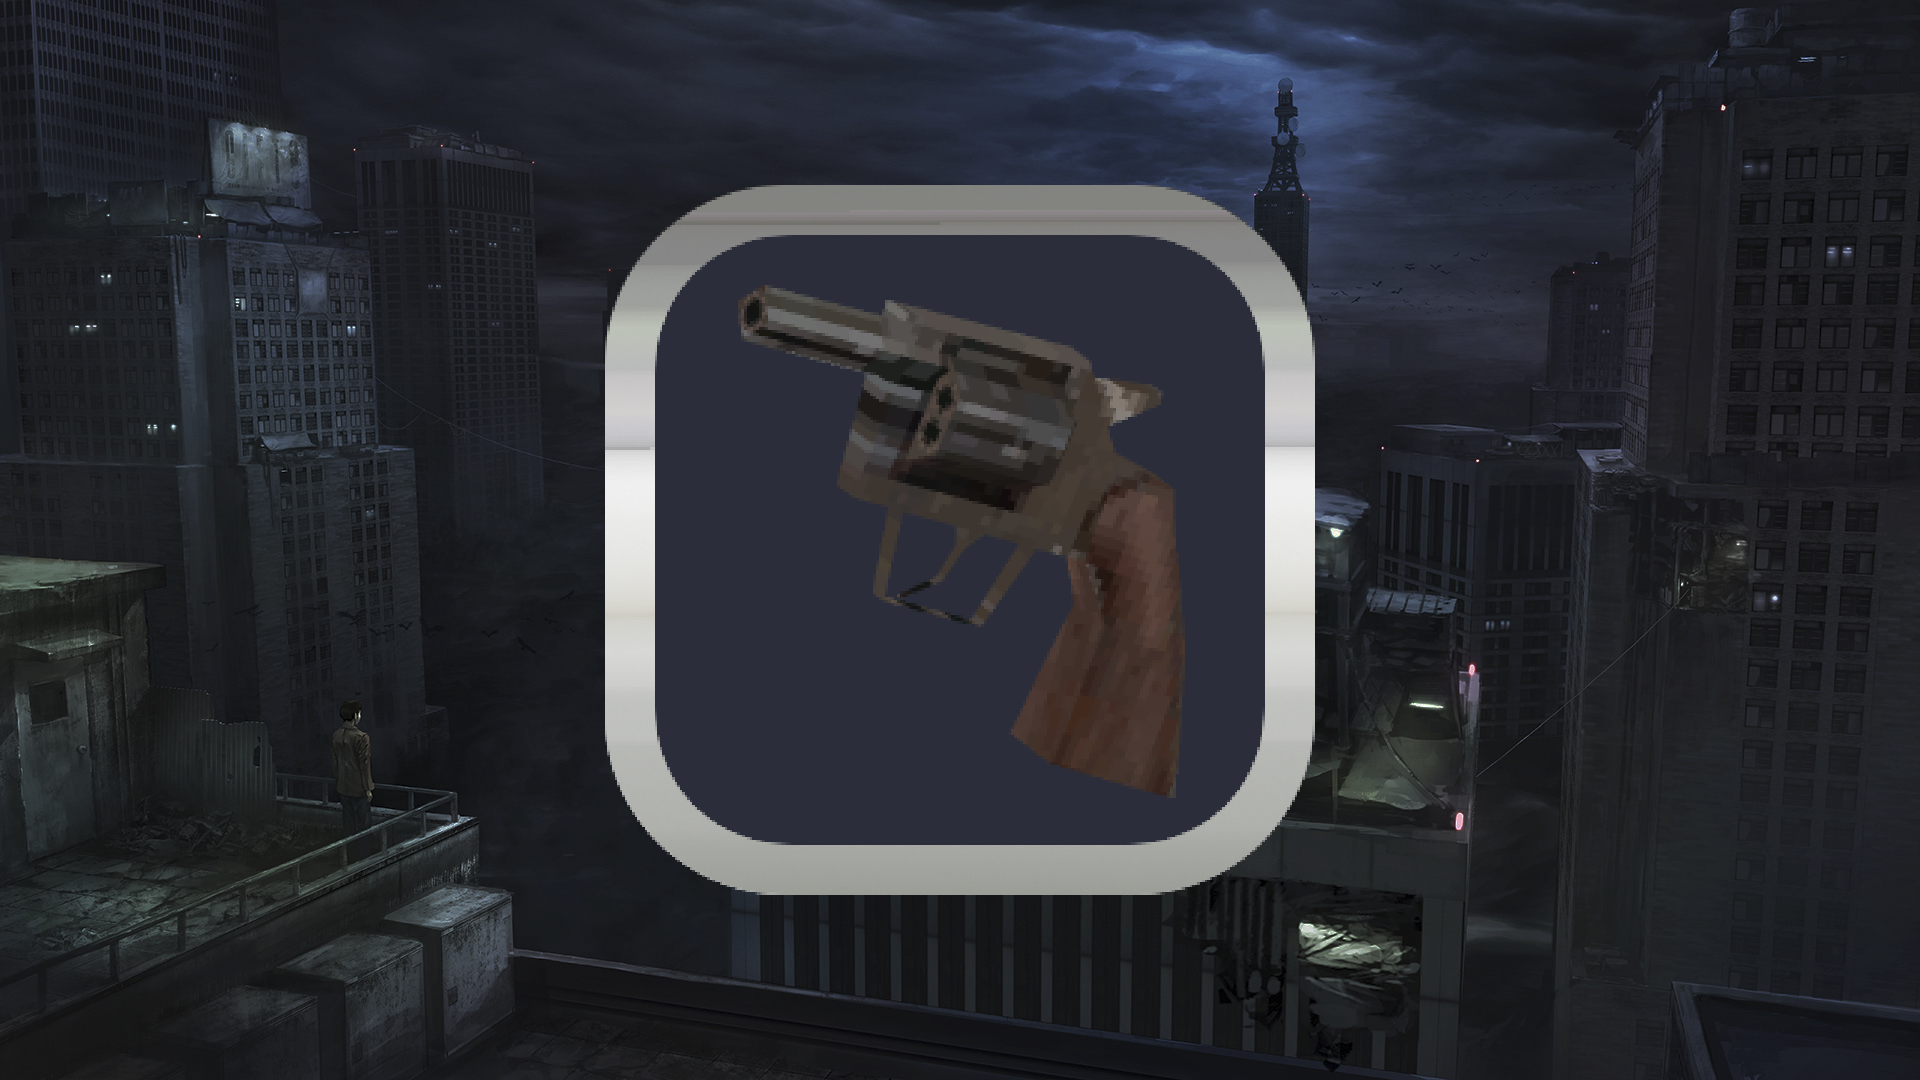 Icon for Kids playing with guns.